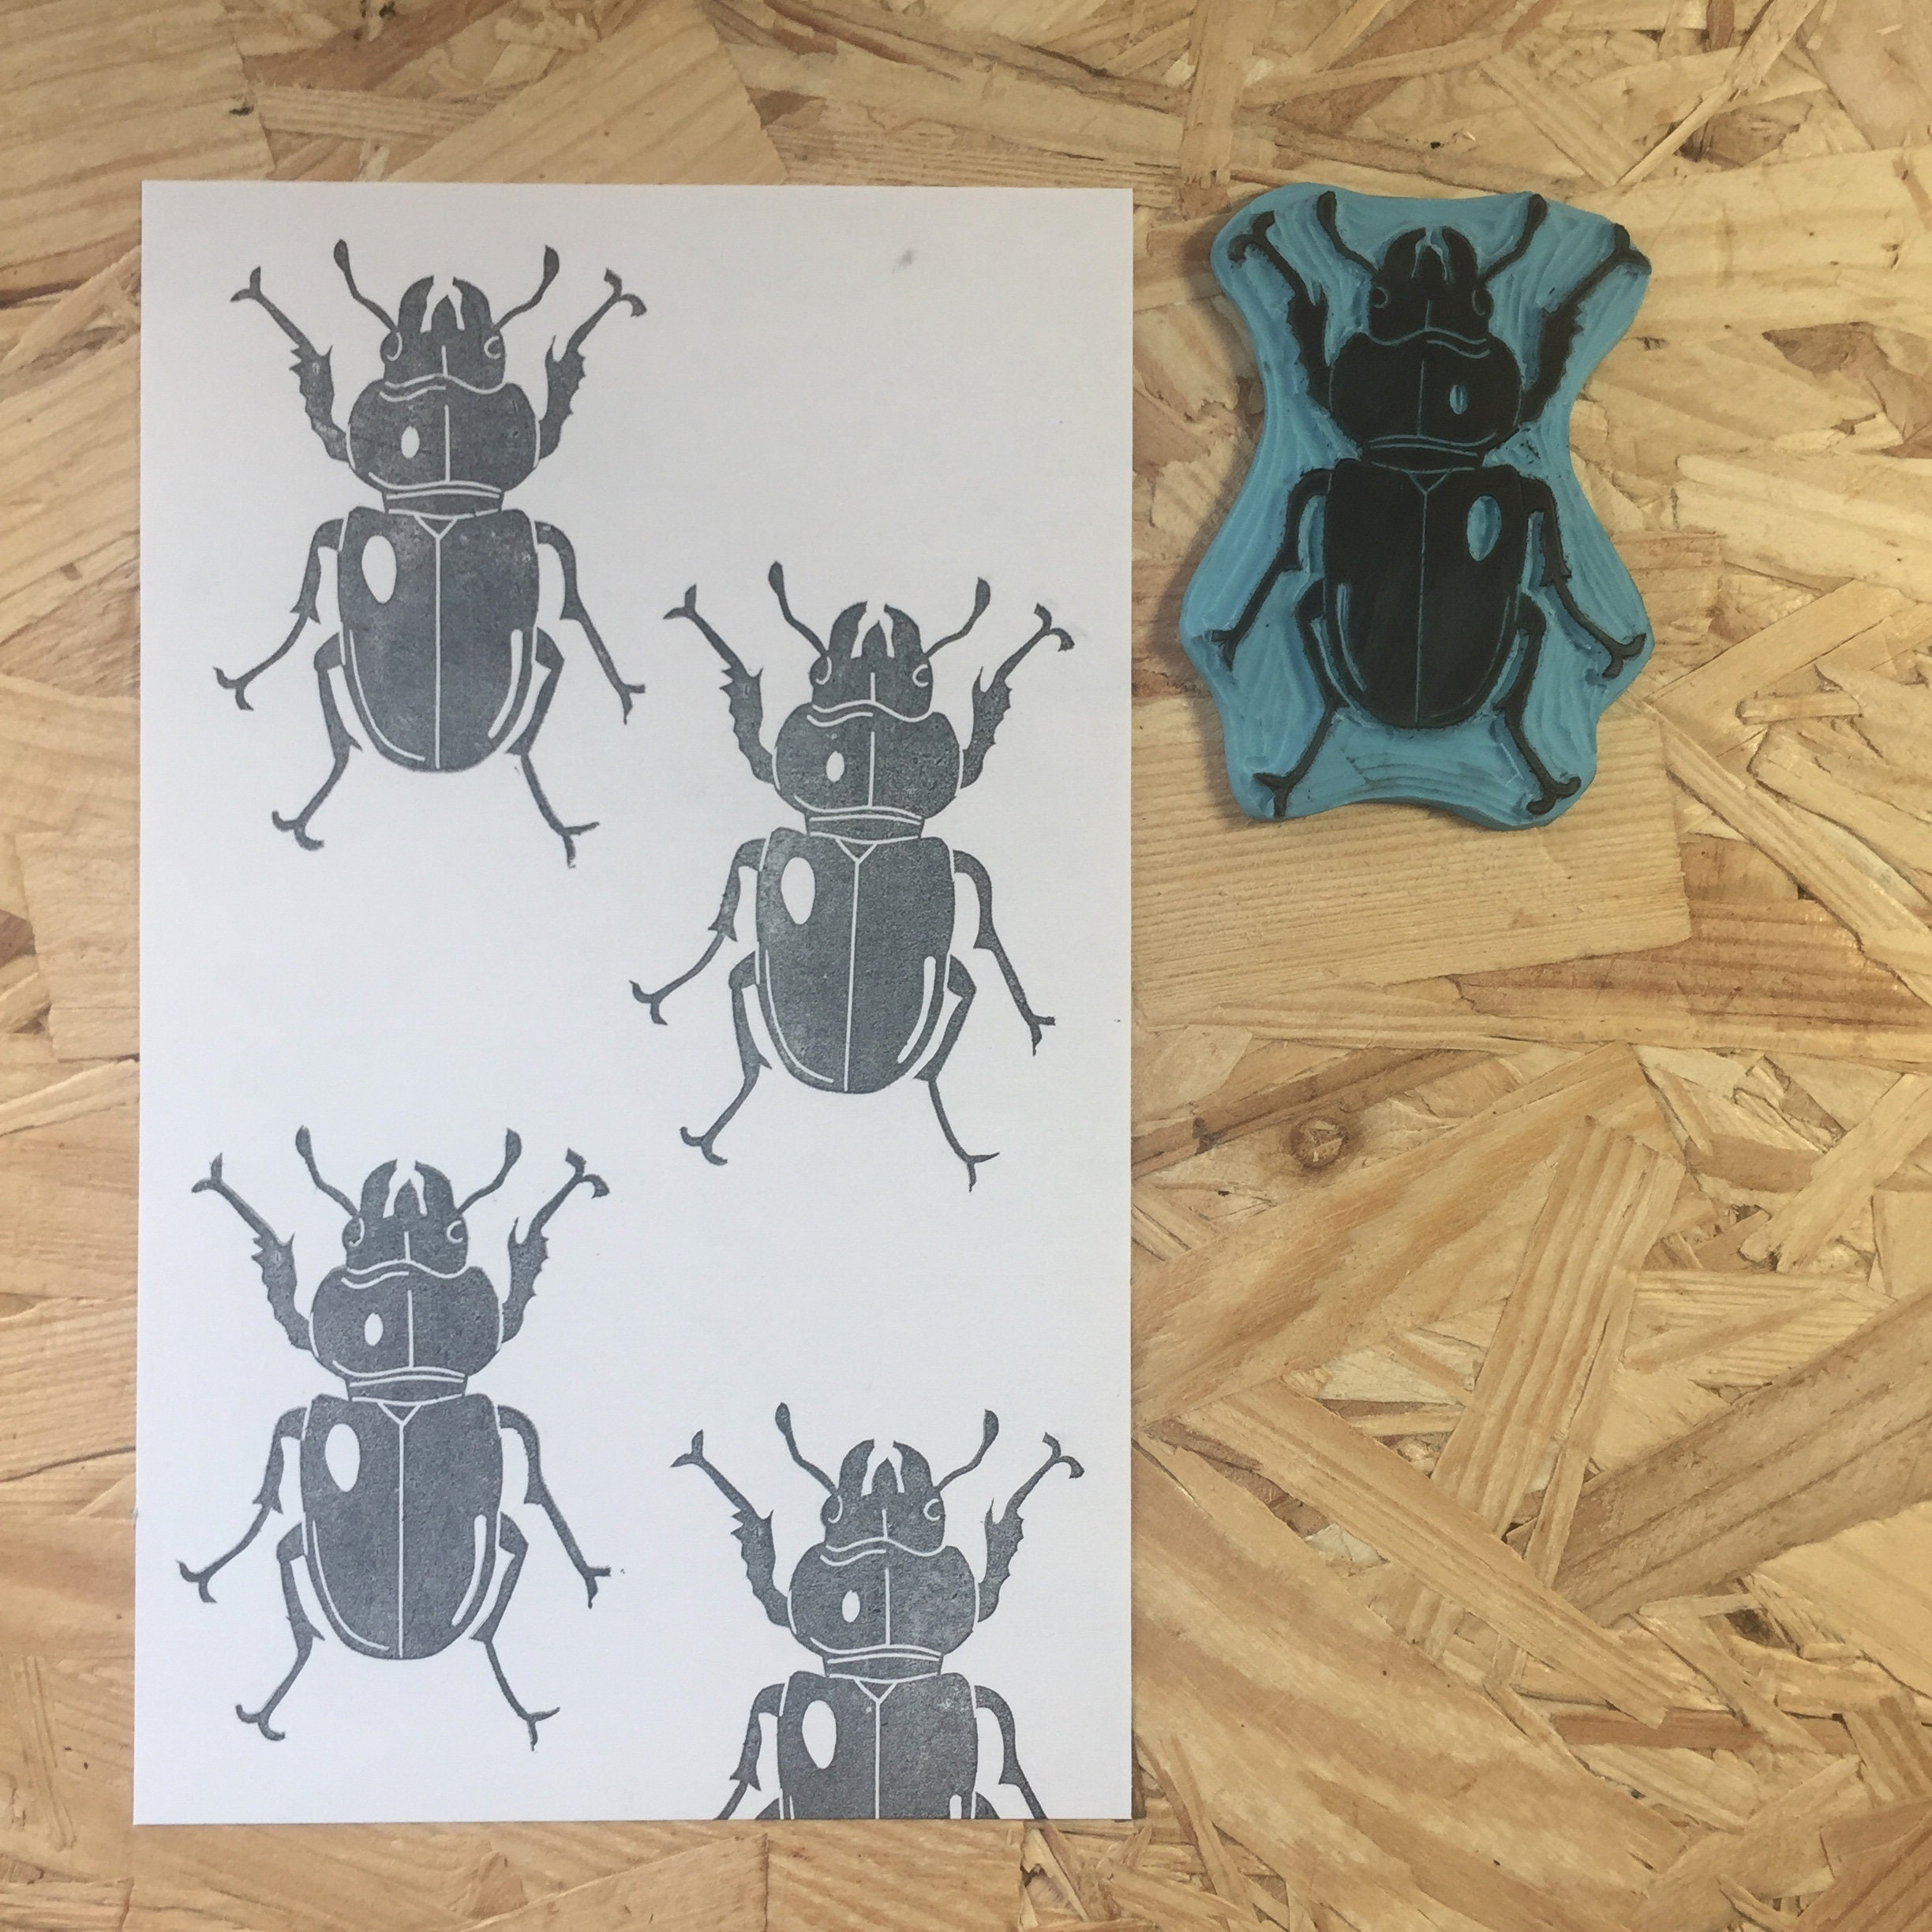 Rubber stamp, hand carved stamp, mounted wedding or unmounted, wedding mounted design, animal design, beetle, insect 94b198